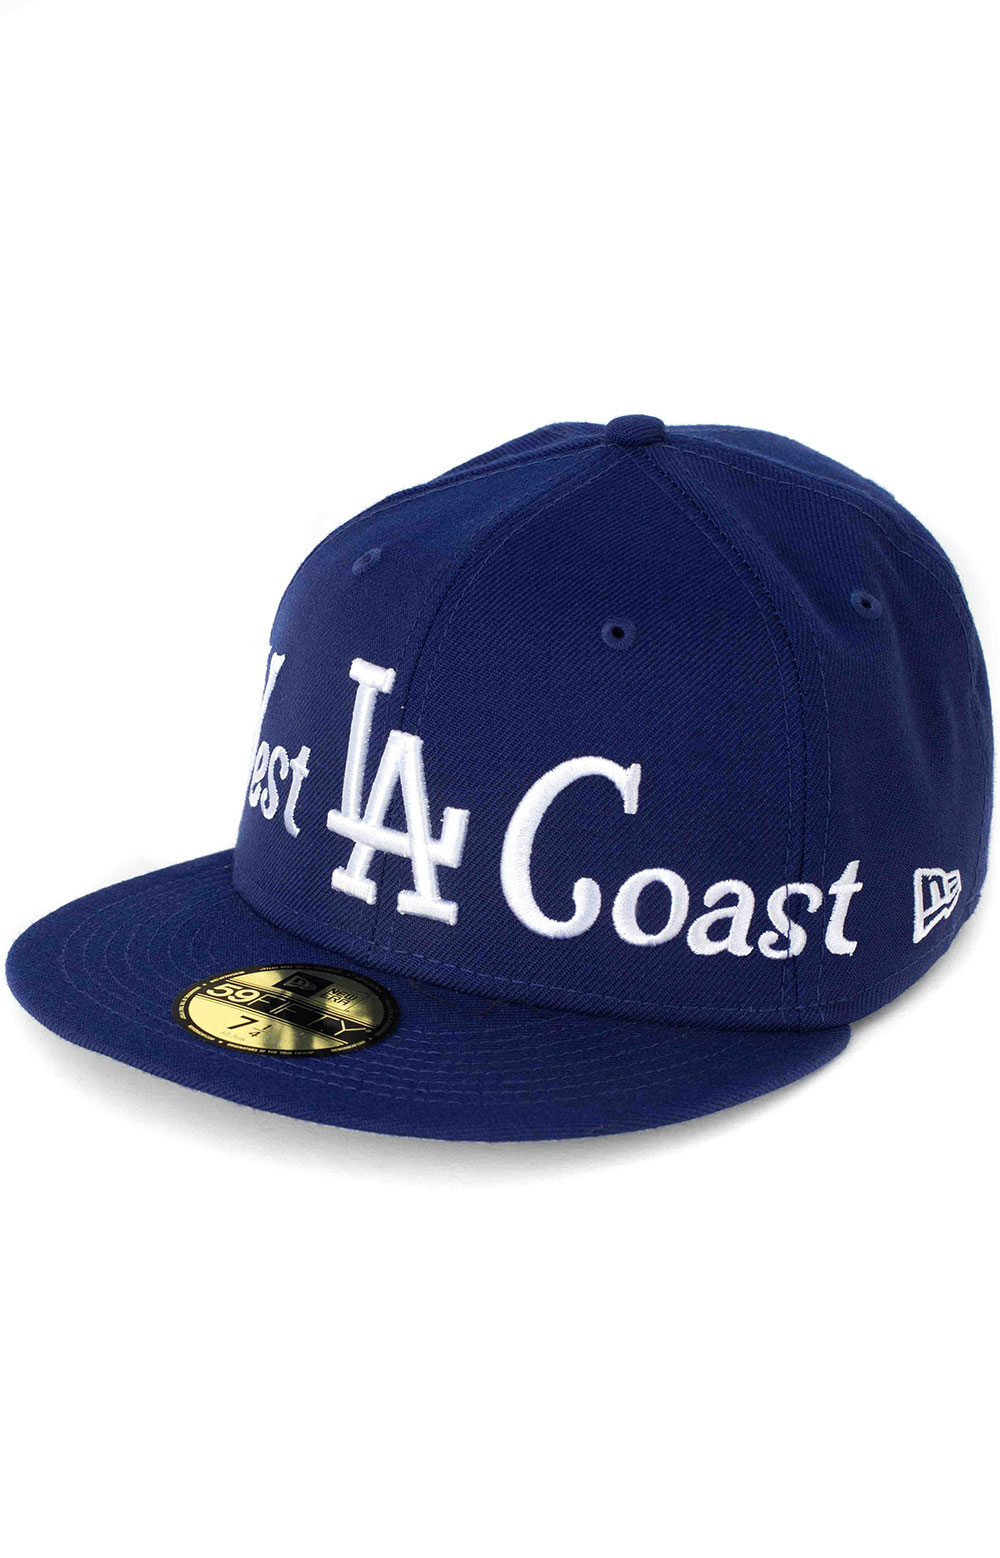 LA Dodgers City Nicknames 59Fifty Fitted Hat - Royal Blue